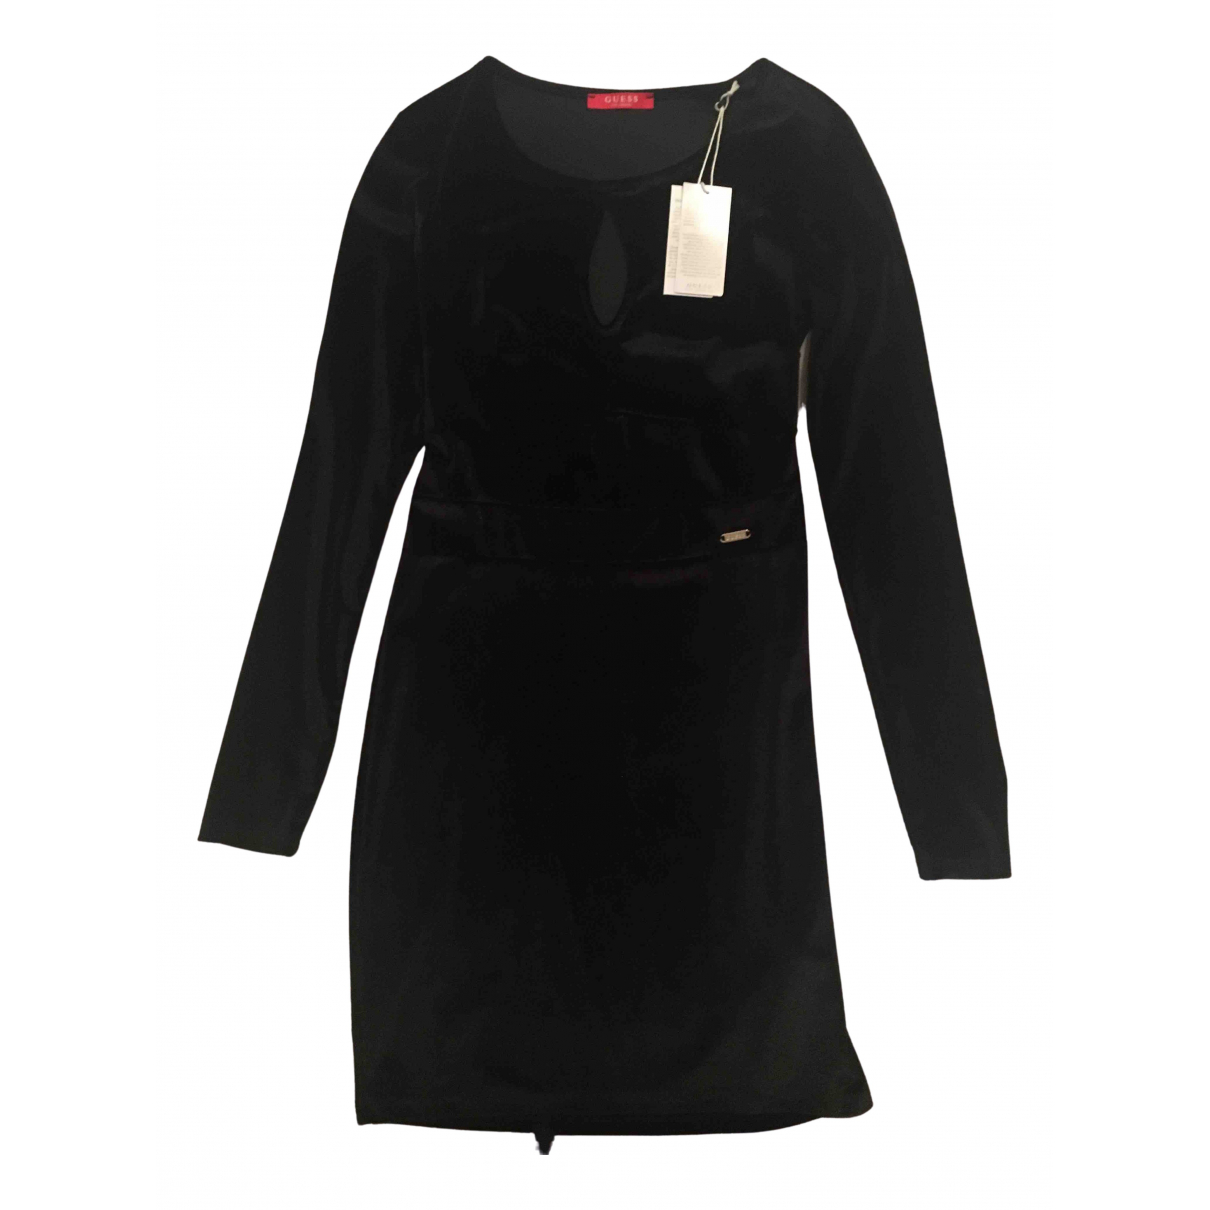 Guess \N Black Velvet dress for Women XS International